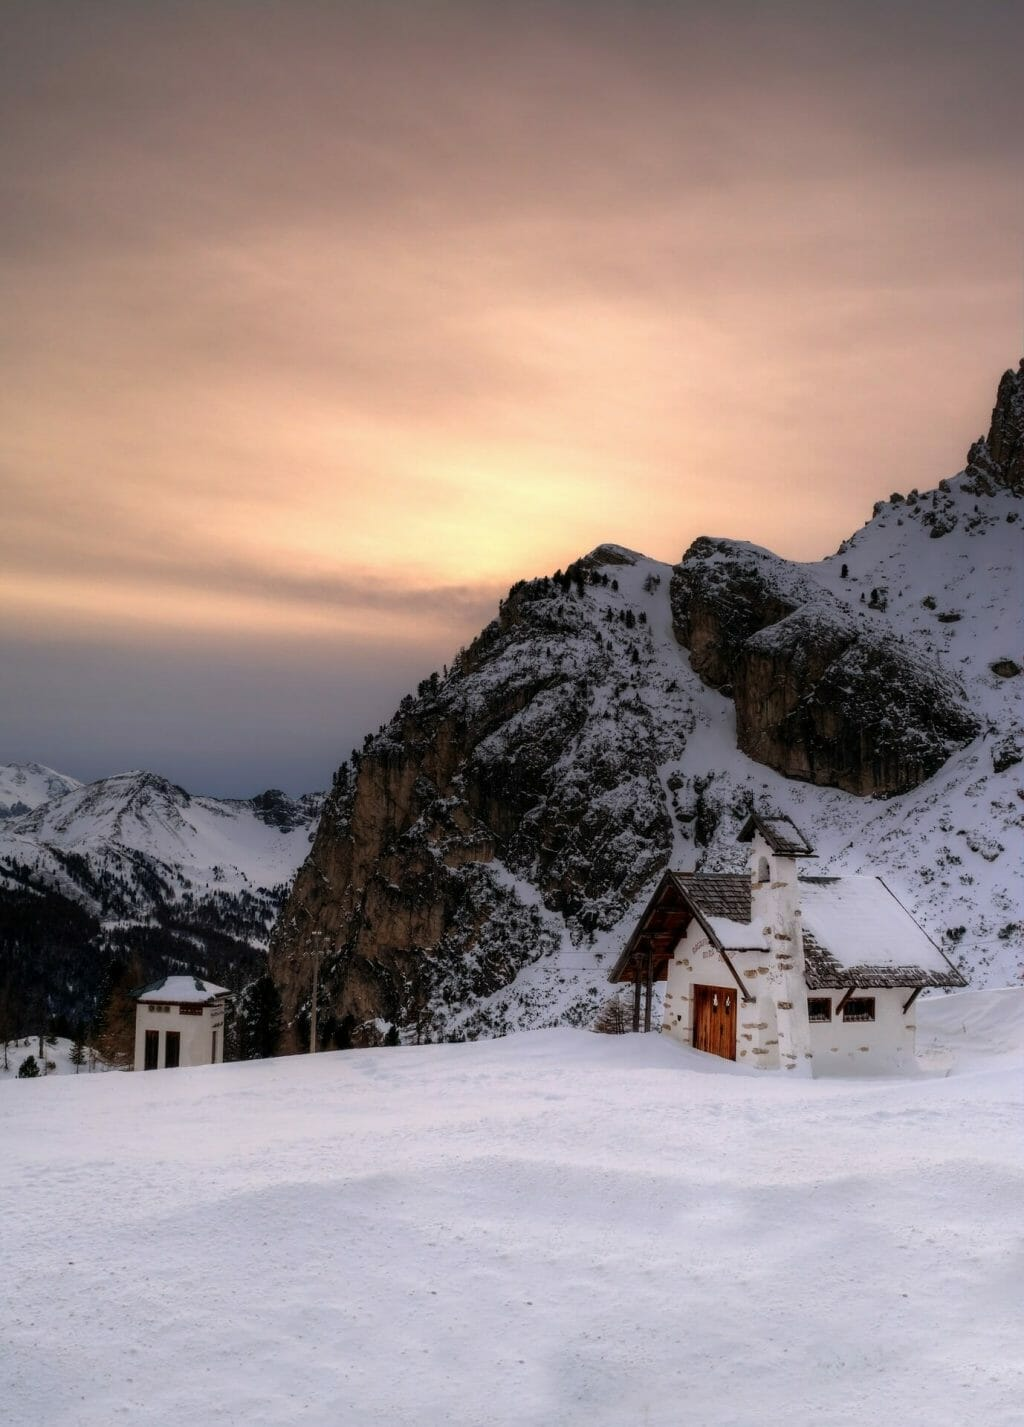 Sunset in the west side of the Arabba area, a peaceful little cottage rests covered and surrounded in snow